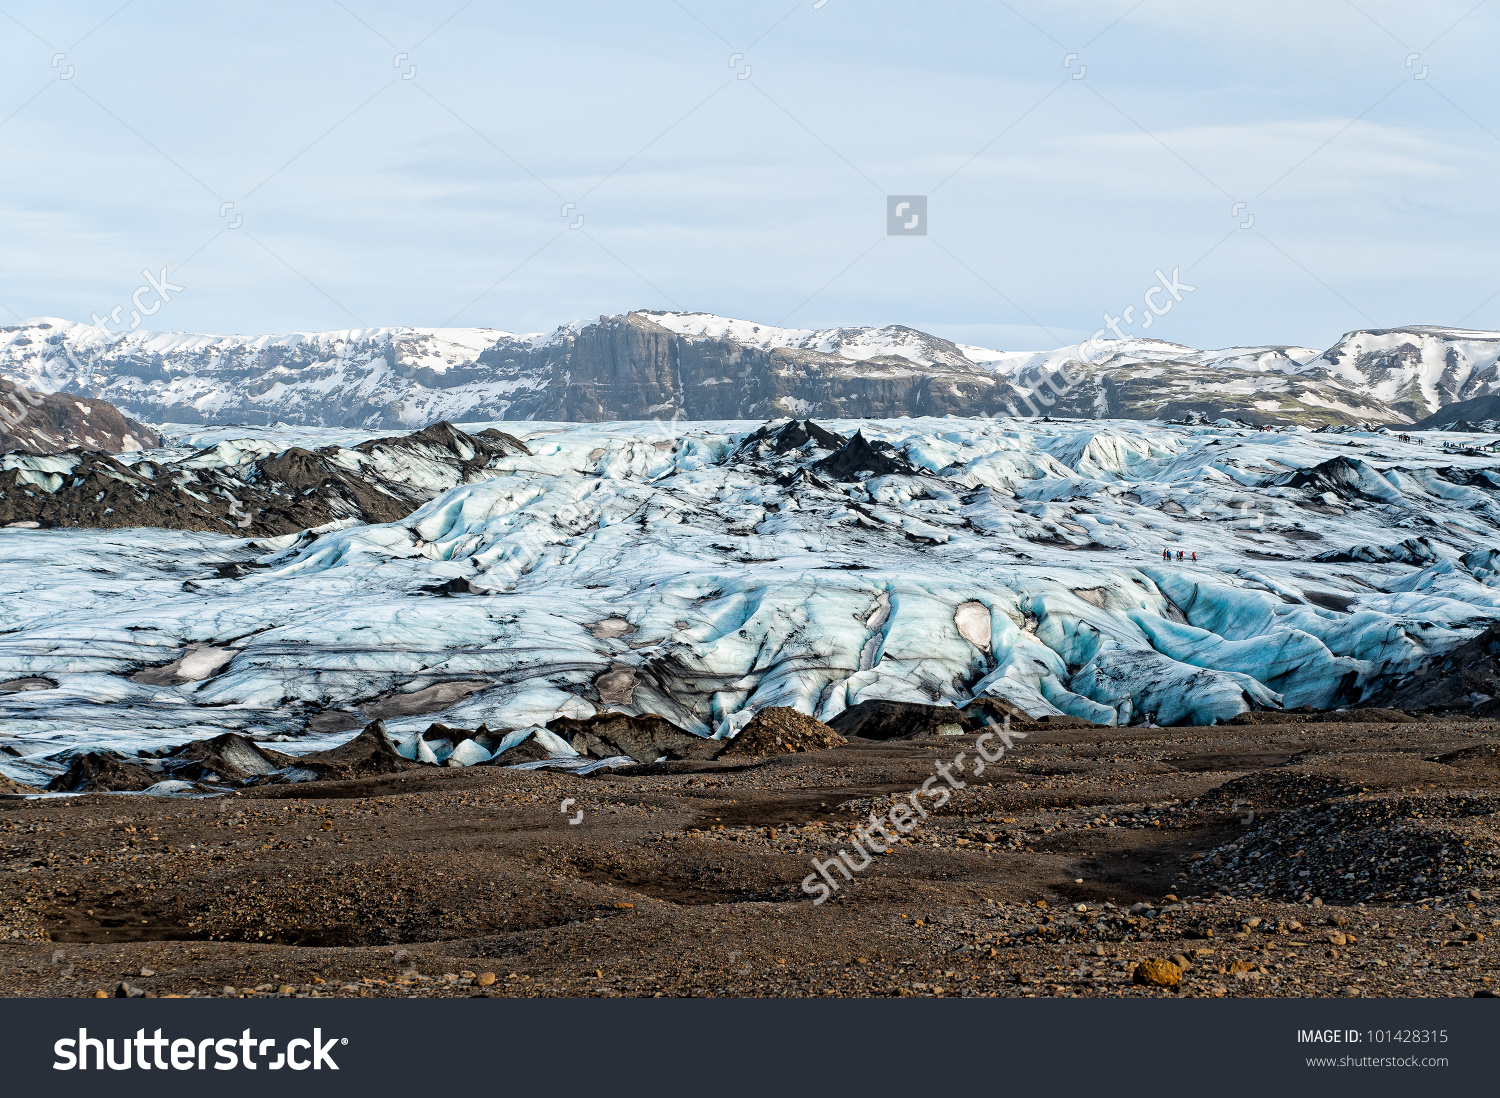 Solheimajokull Glacier In Iceland Stock Photo 101428315 : Shutterstock.